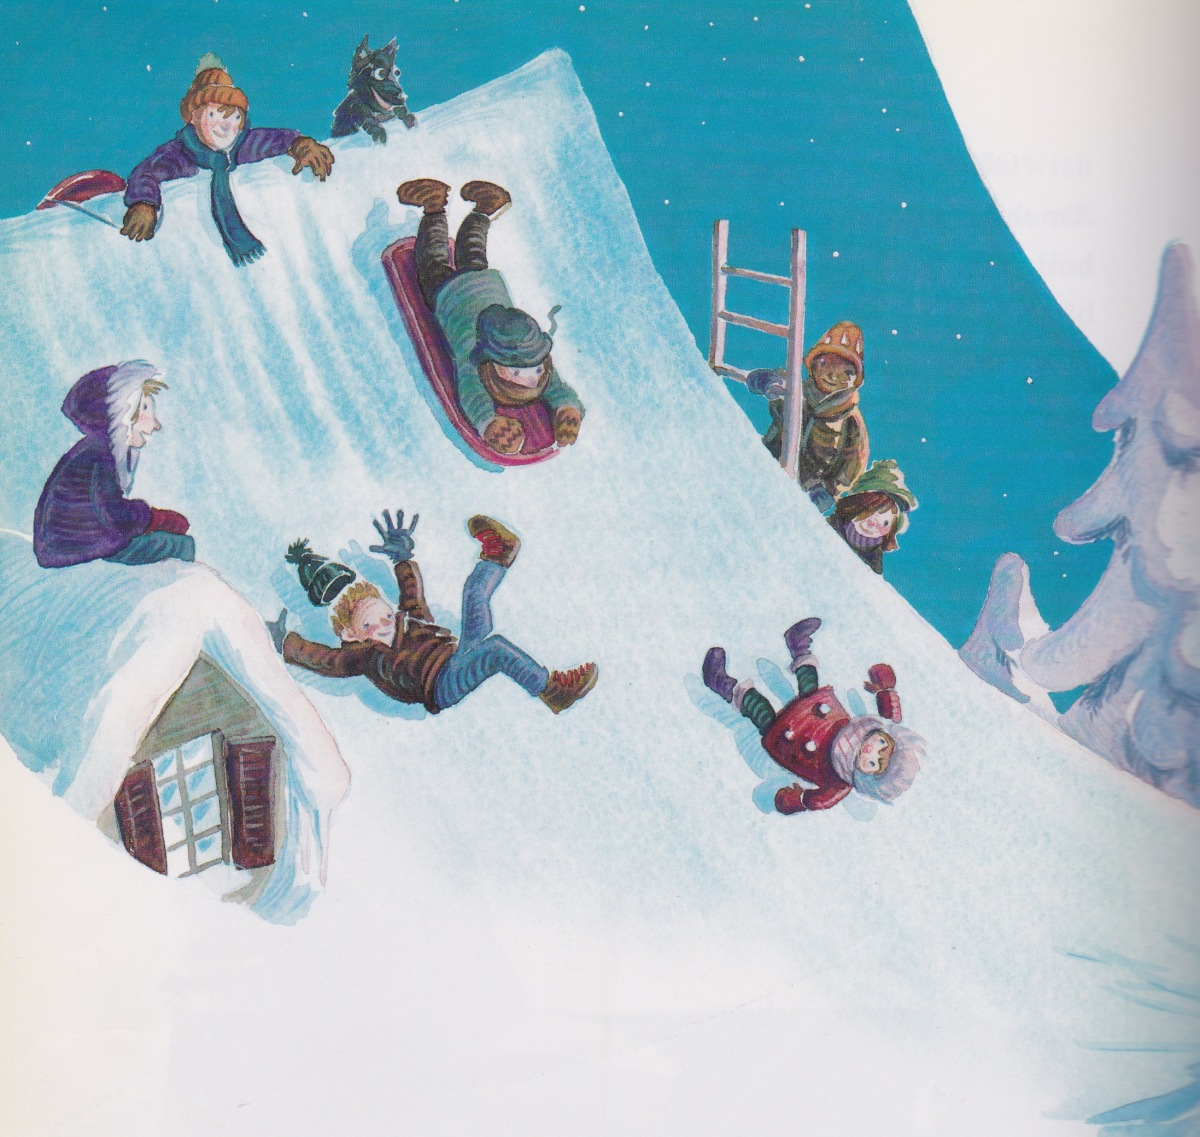 pippi-longstockings-after-christmas-party-illustration-detail-michael-chesworth